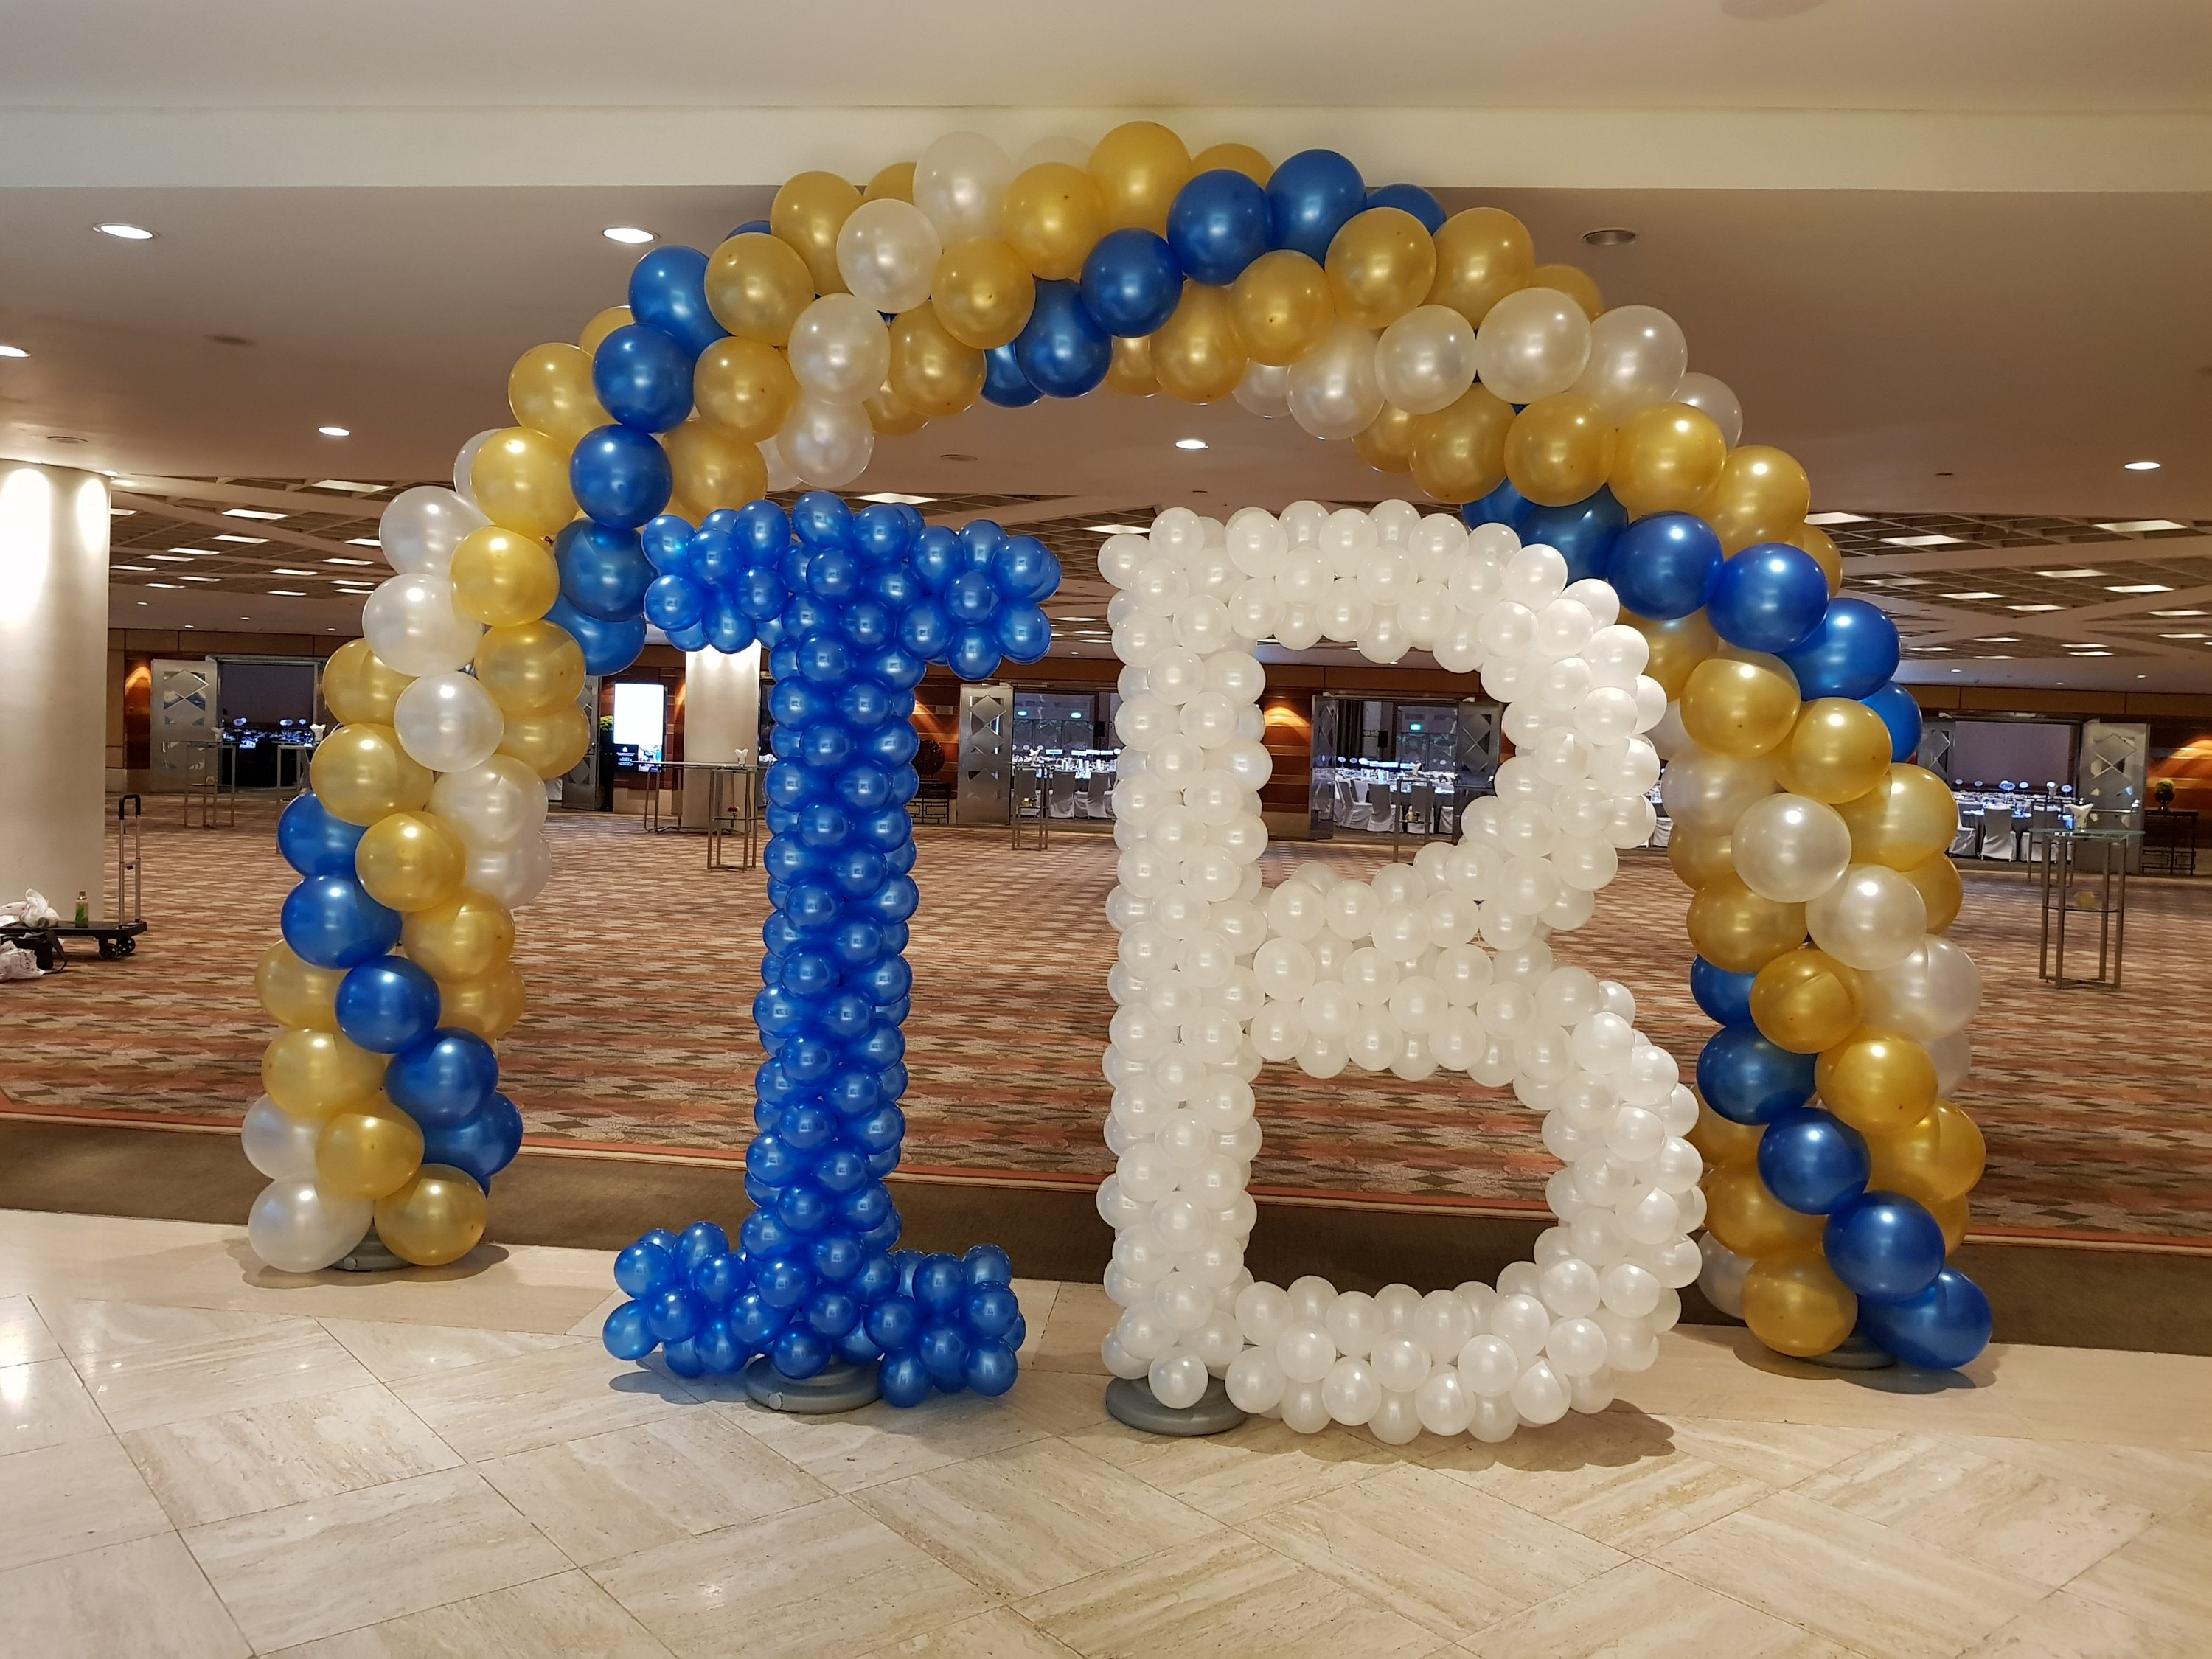 , Balloon Decoration for IB Singapore, Singapore Balloon Decoration Services - Balloon Workshop and Balloon Sculpting